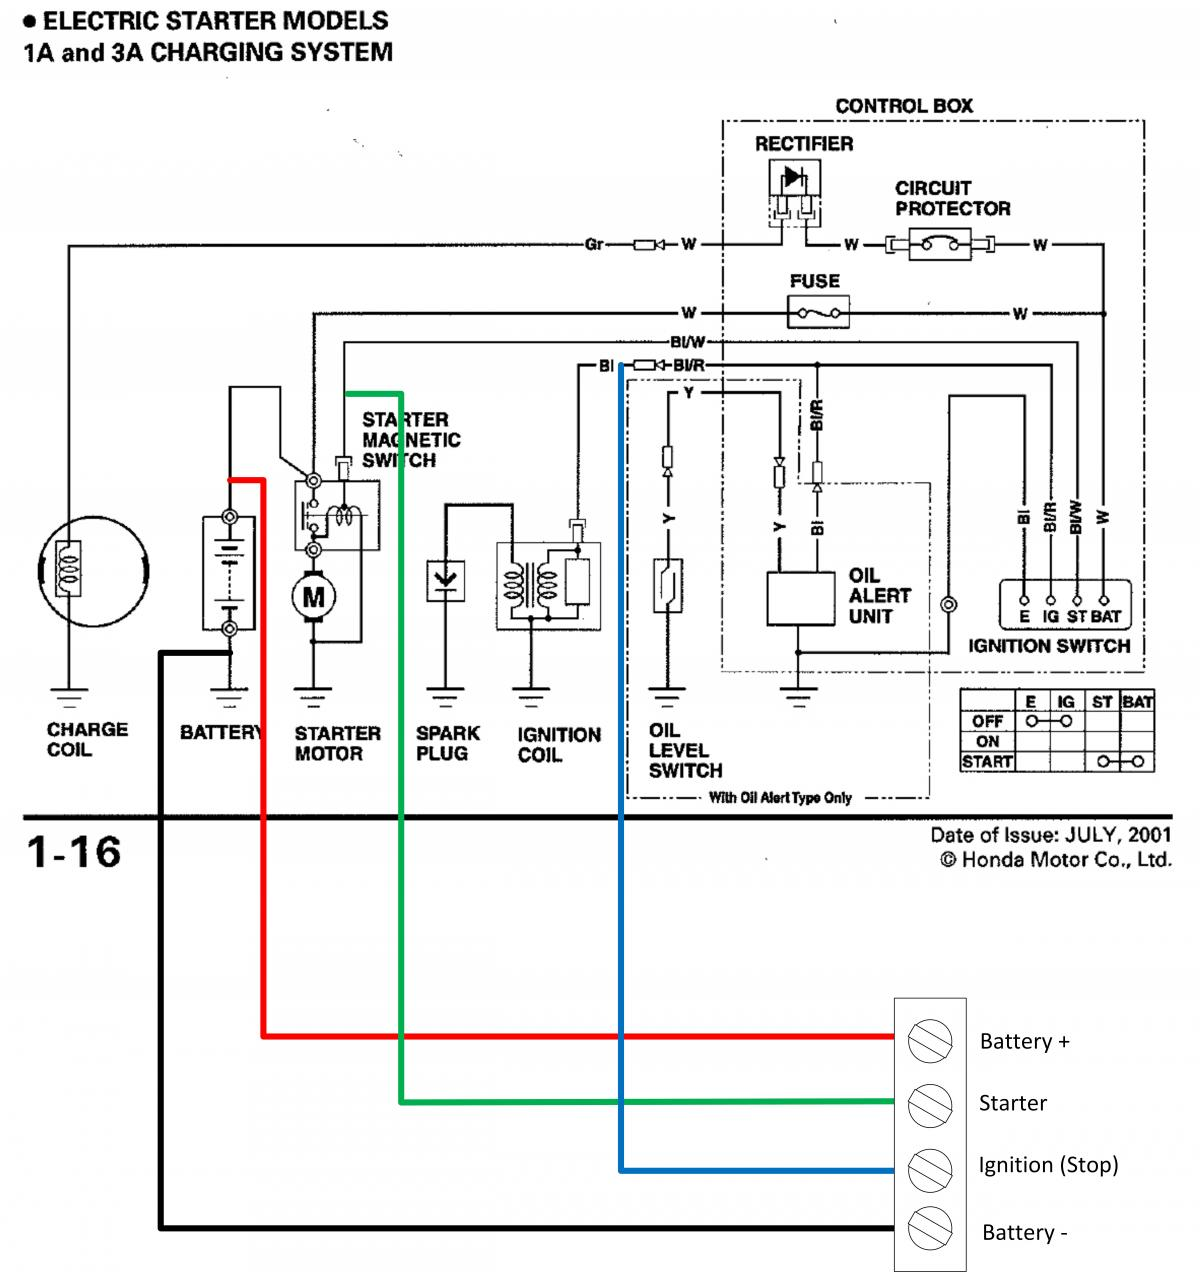 generator auto start wiring diagram 2006 mazda 3 belt generac free engine